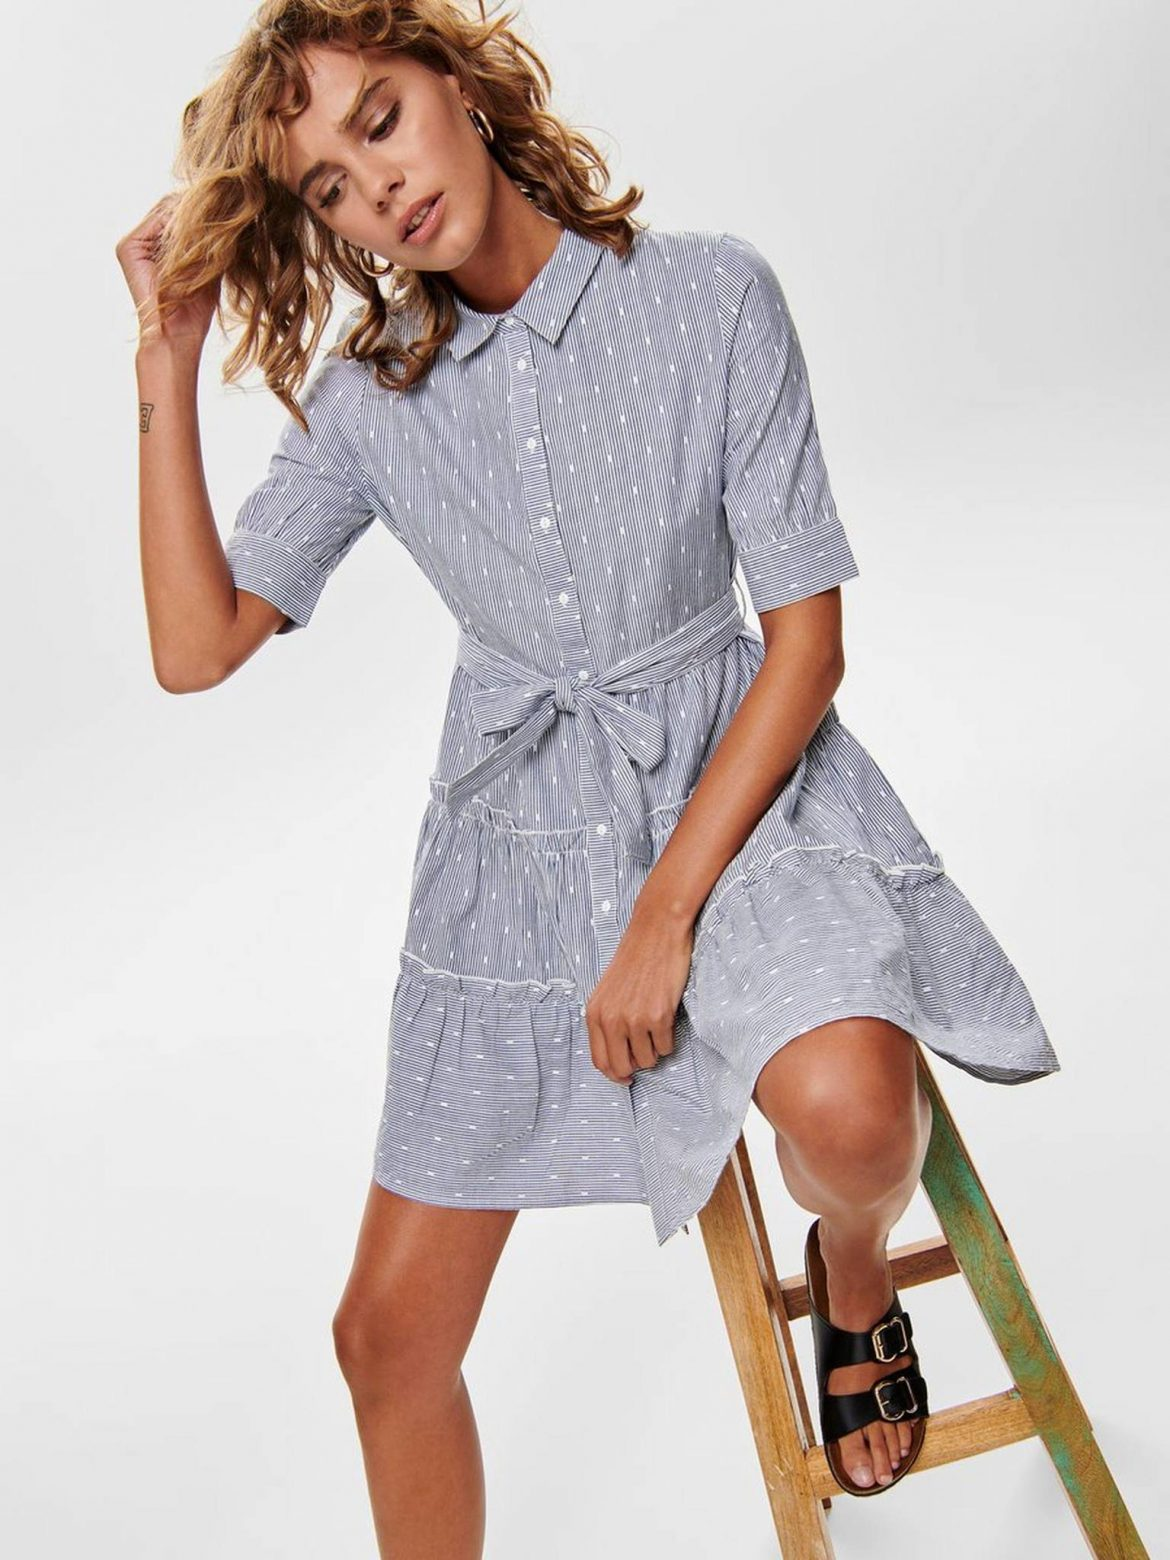 Light-dresses-are-a-must-for-spring-and-summer.fnaoh681913d81221d359dce6eafffa0d2065oe5D45B378.jpeg